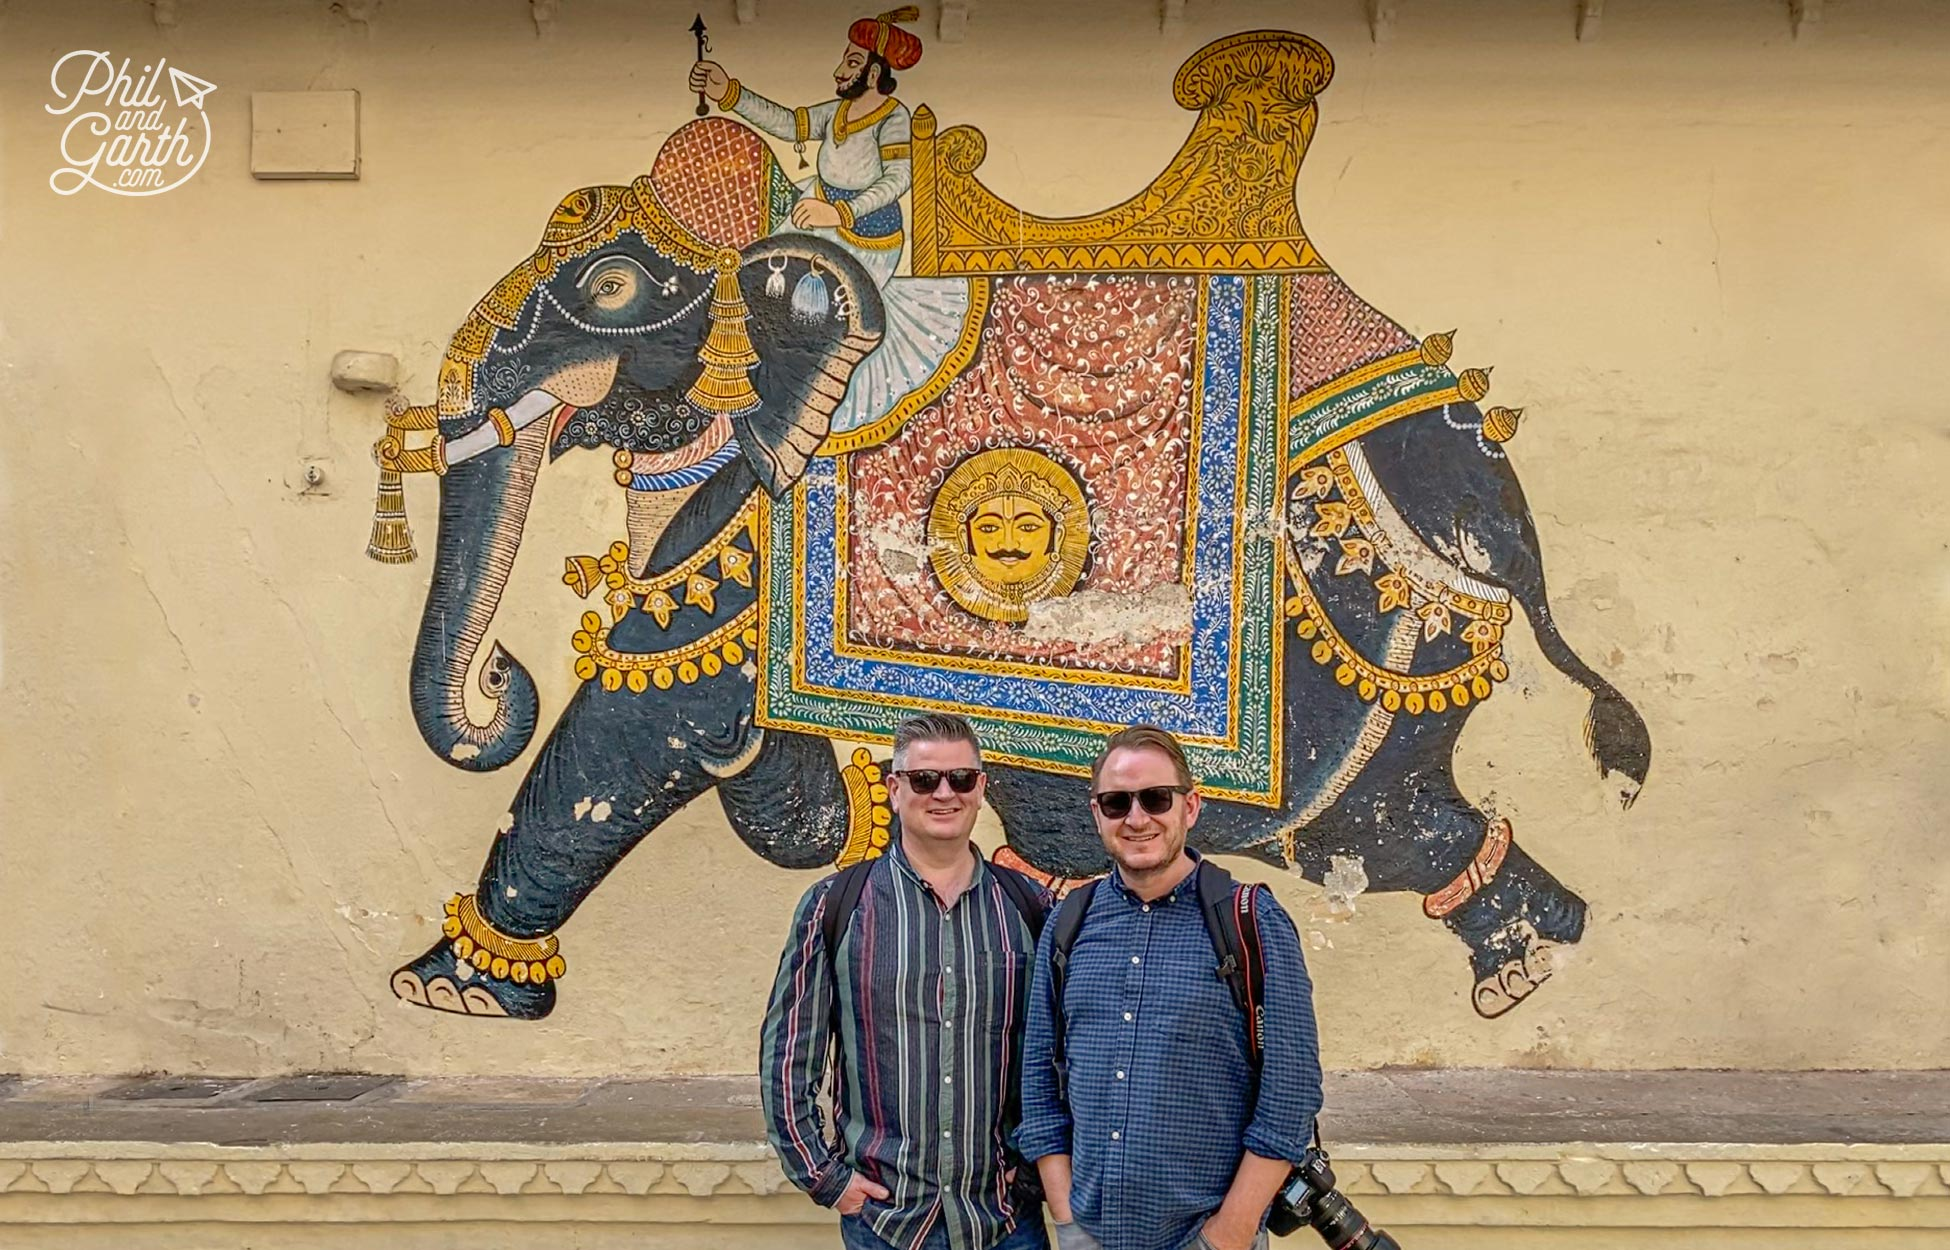 Phil and Garth's Top 5 Udaipur Travel Tips